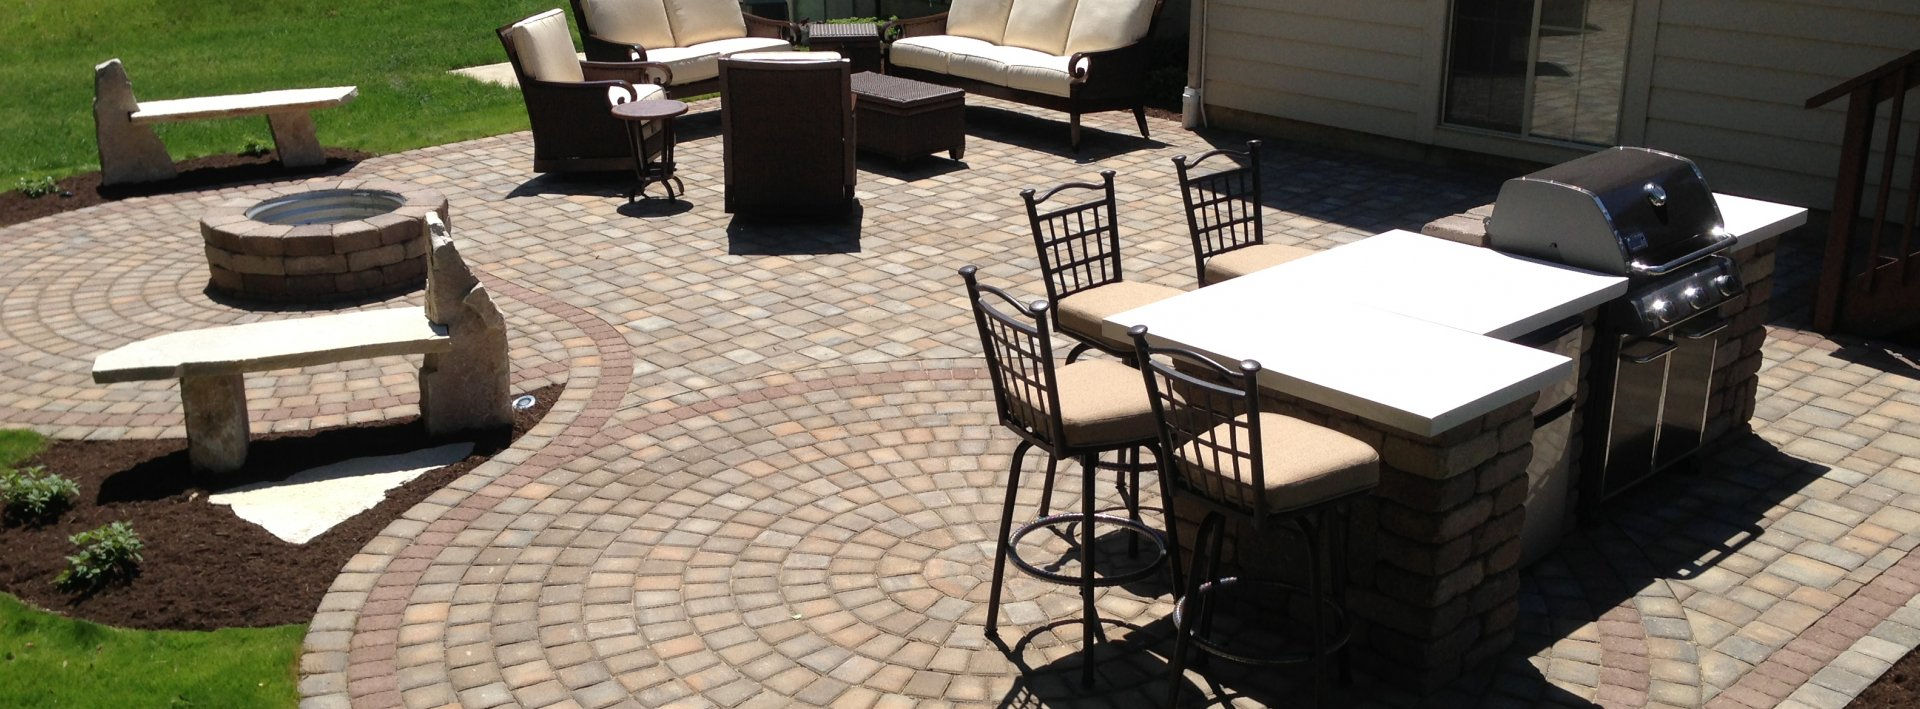 Paver deck, fire feature and grill